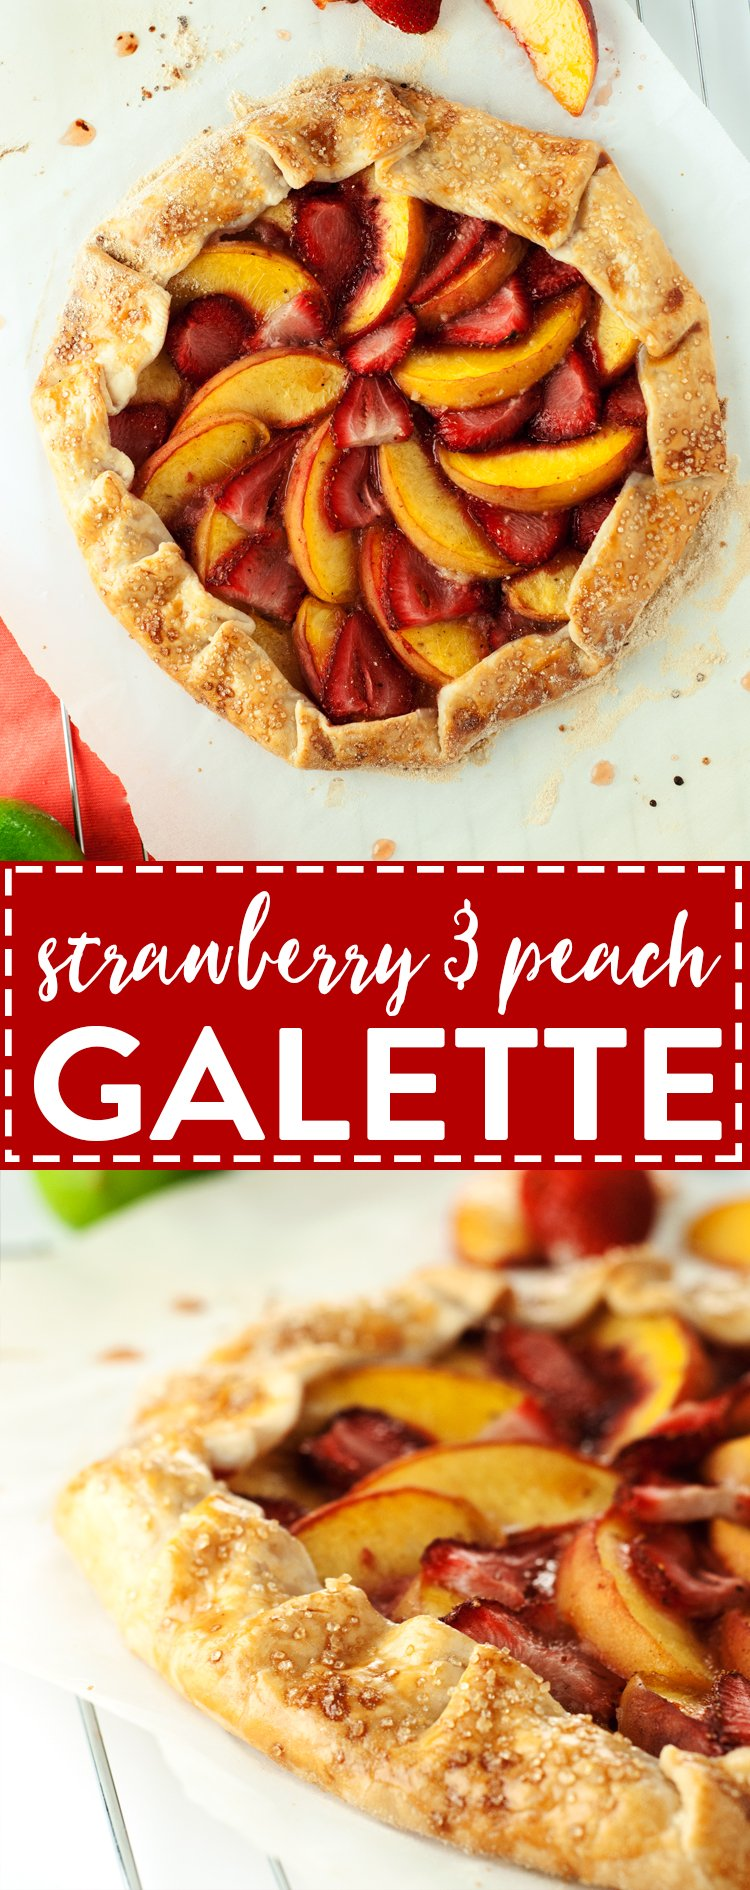 Strawberry Peach Galette Recipe | asimplepantry.com